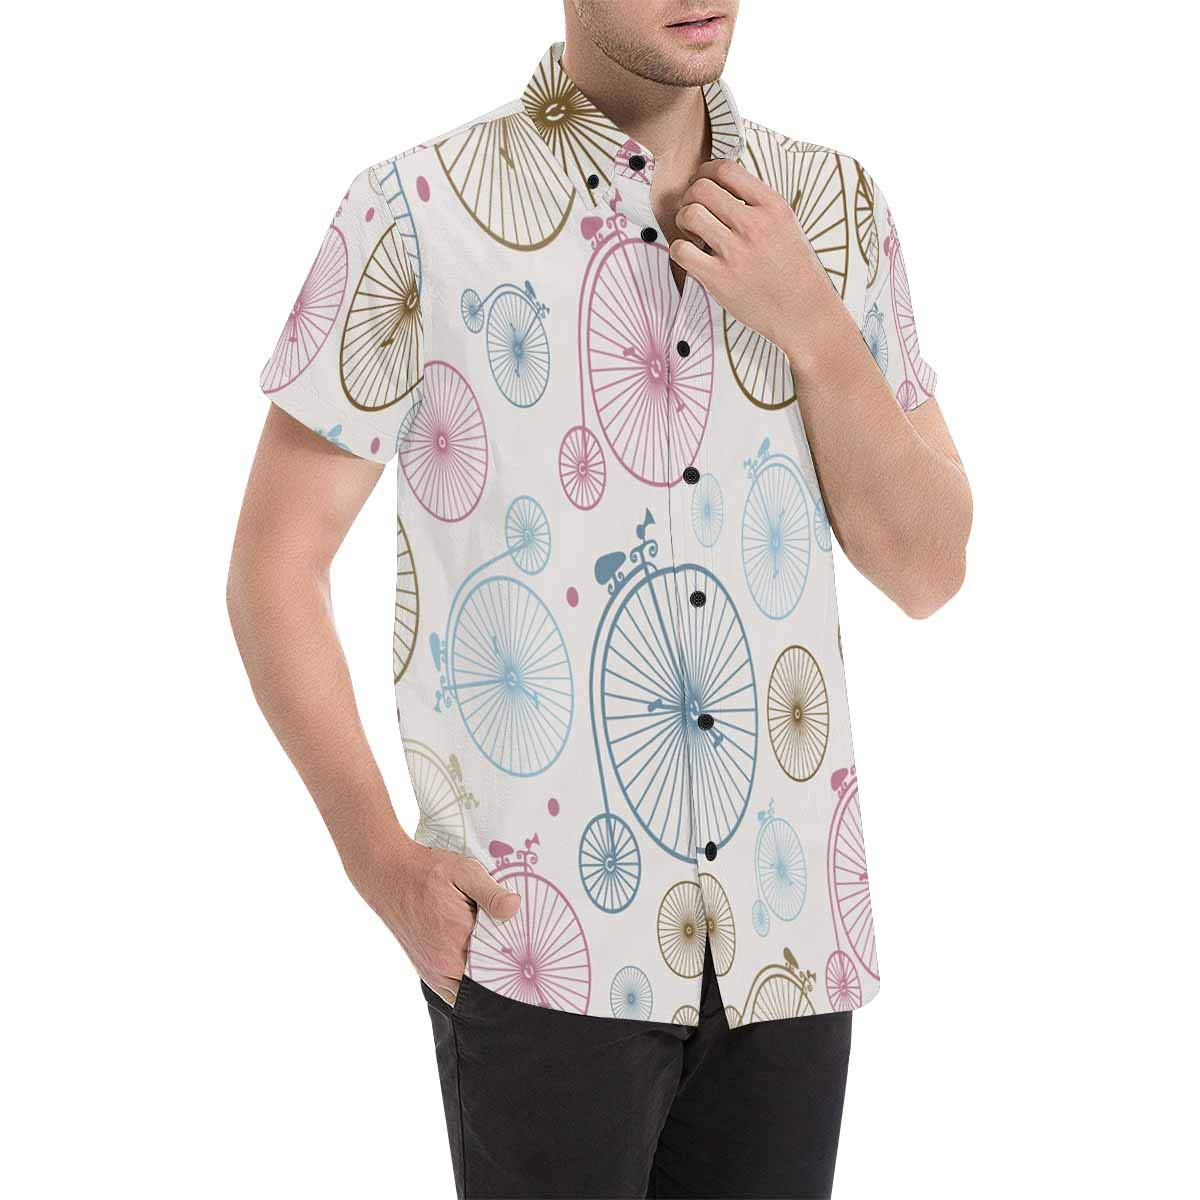 InterestPrint Short-Sleeve Retro Vintage Bicycle Hipster Shirt for Men S-5XL